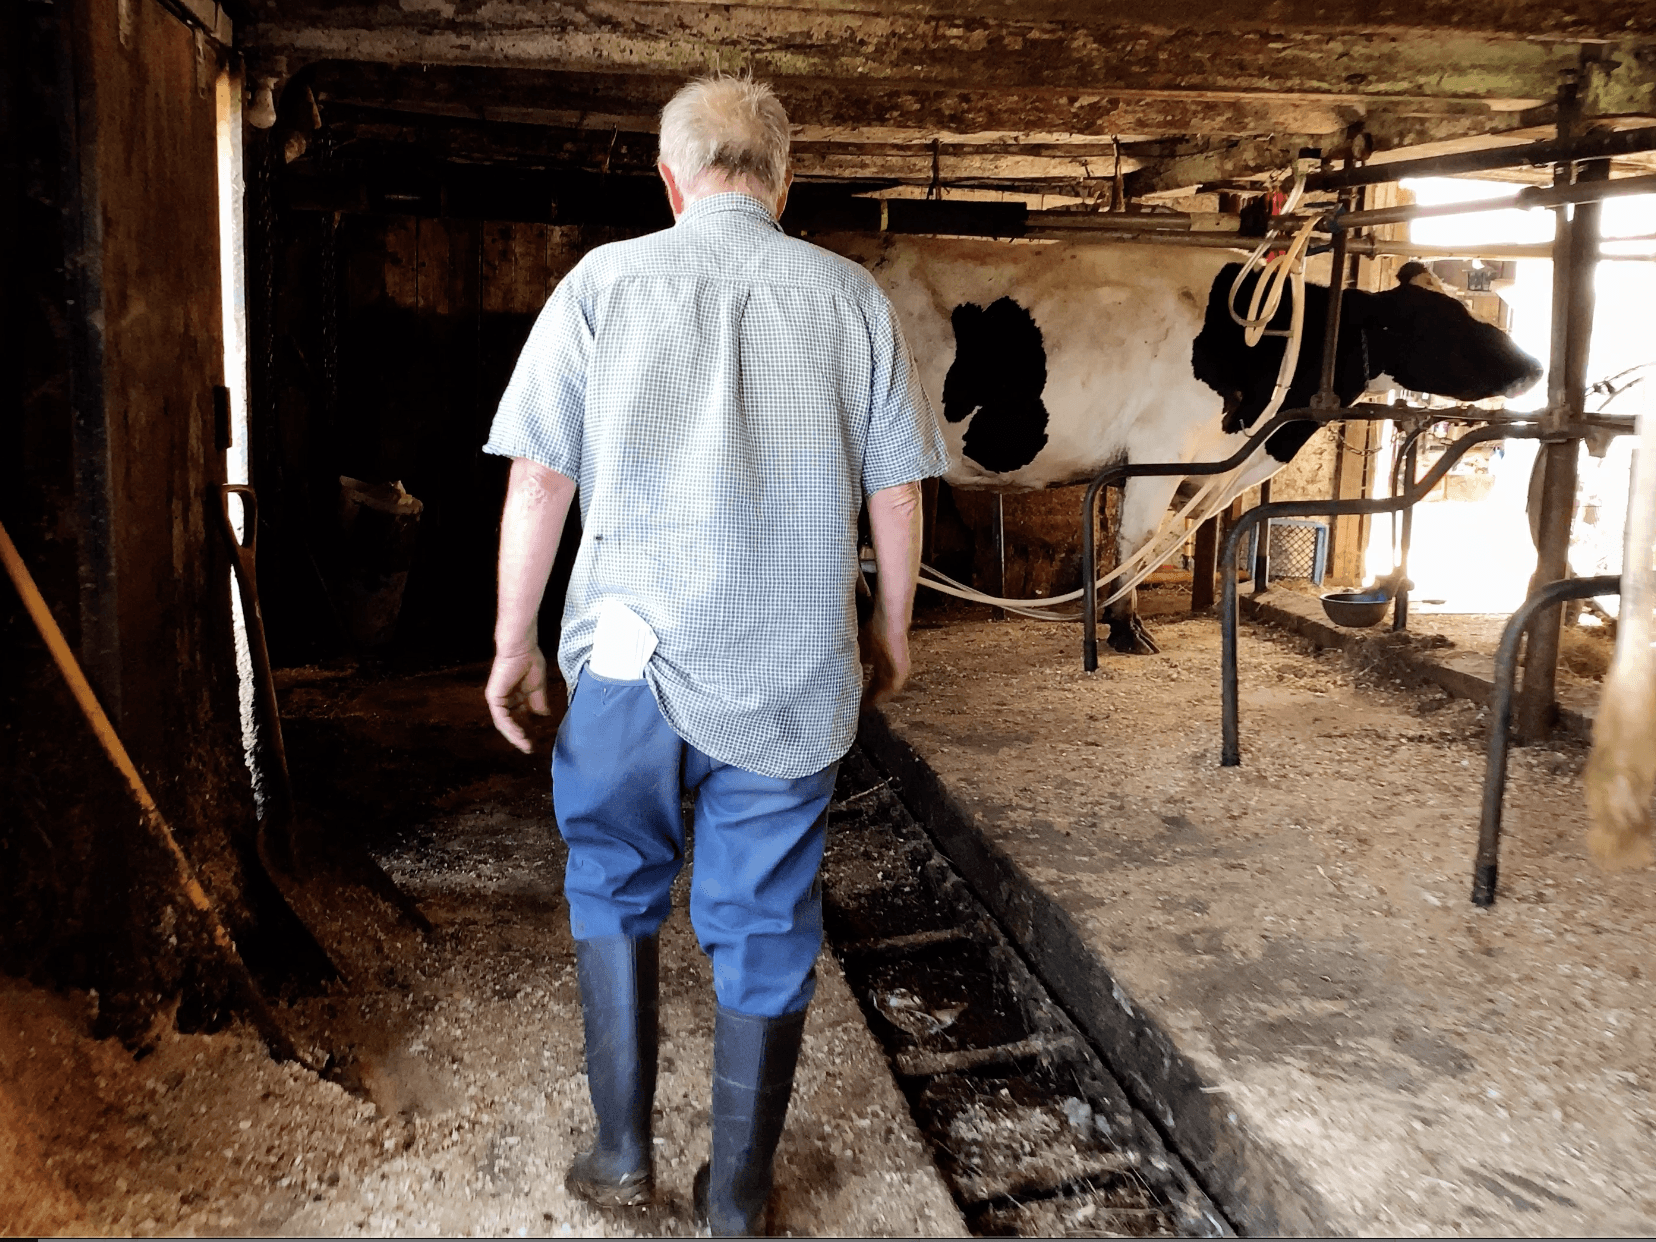 American Farmers: The Casualty of Donald Trump's Trade War